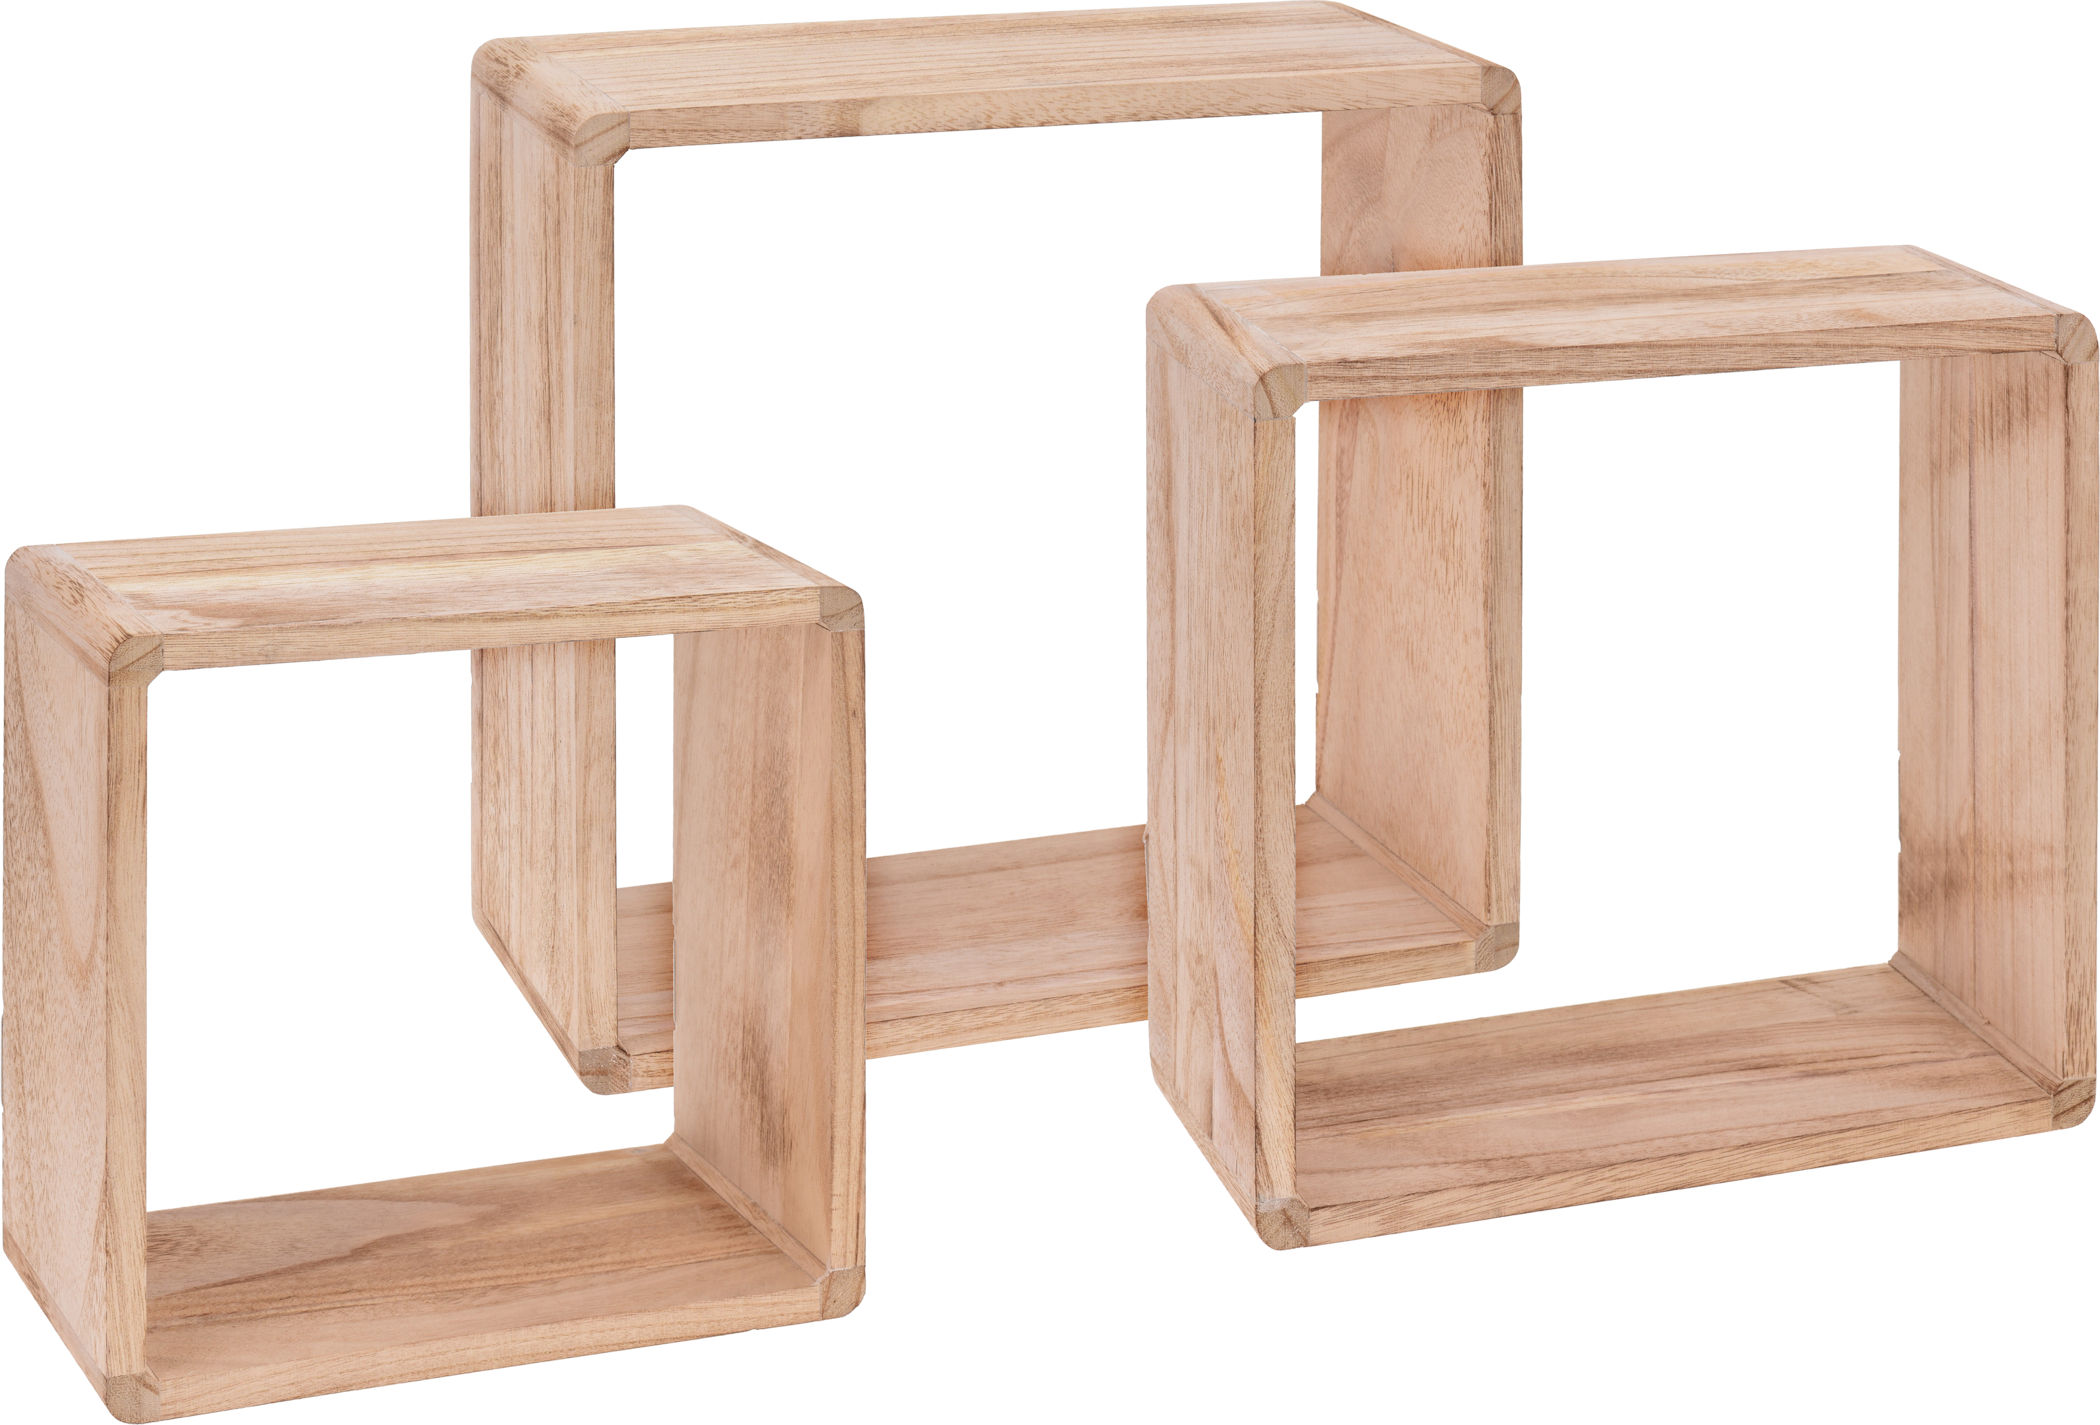 Holz Wandregal Wurfel 3er Set Ca 50 Cm X 35 Cm X 10 Cm Regal